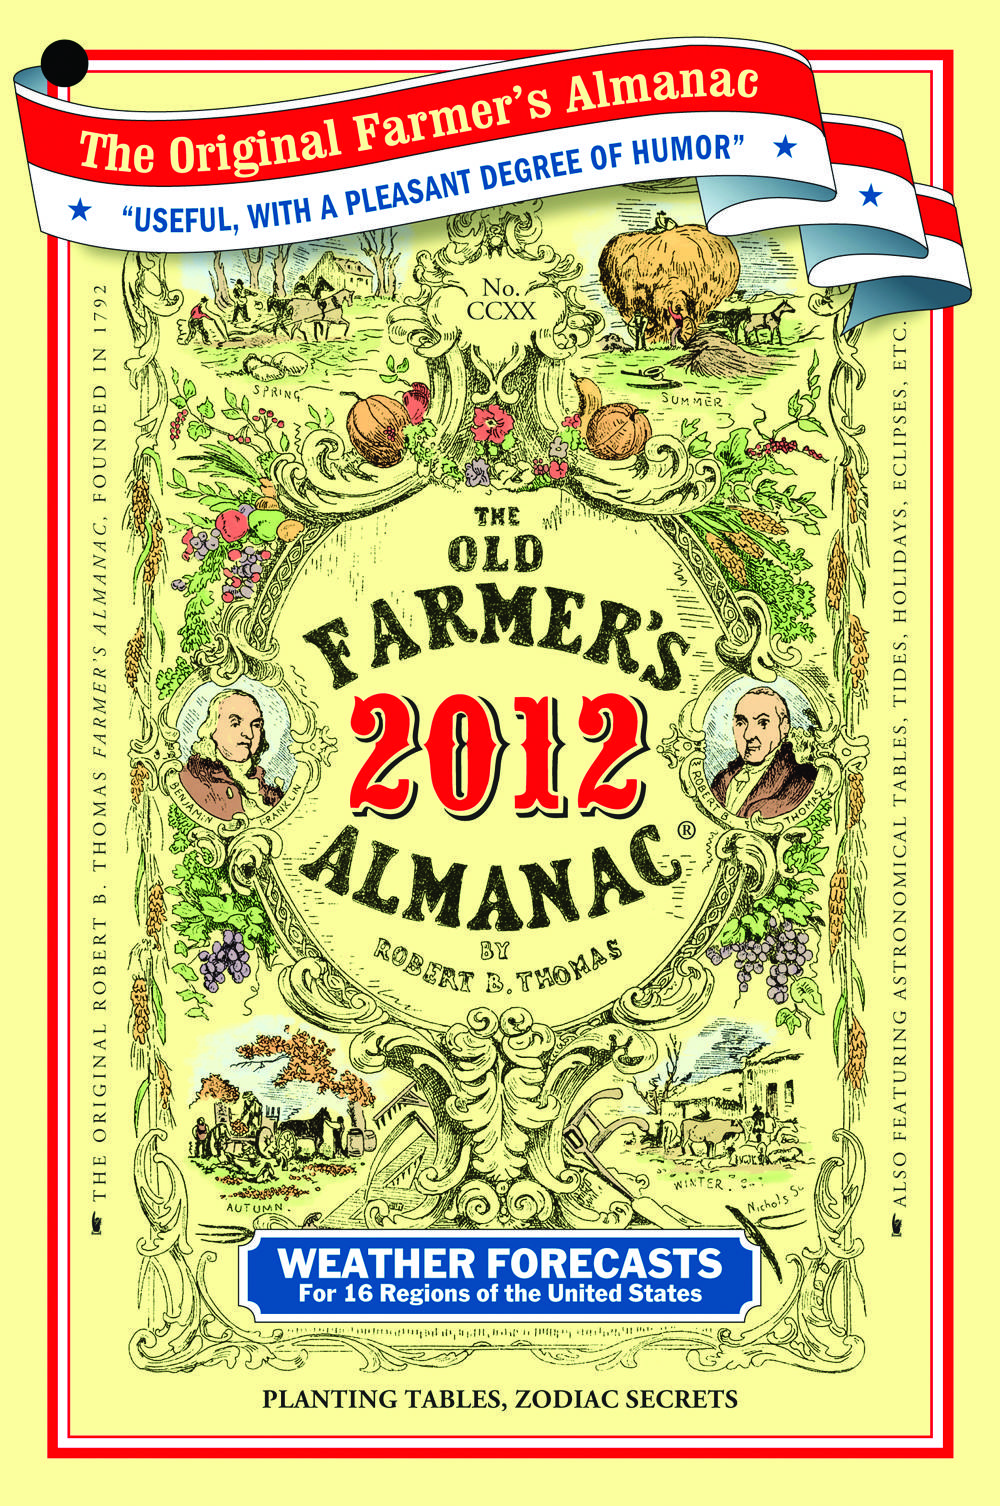 Robert B Thomas' The Old Farmer's Almanac has